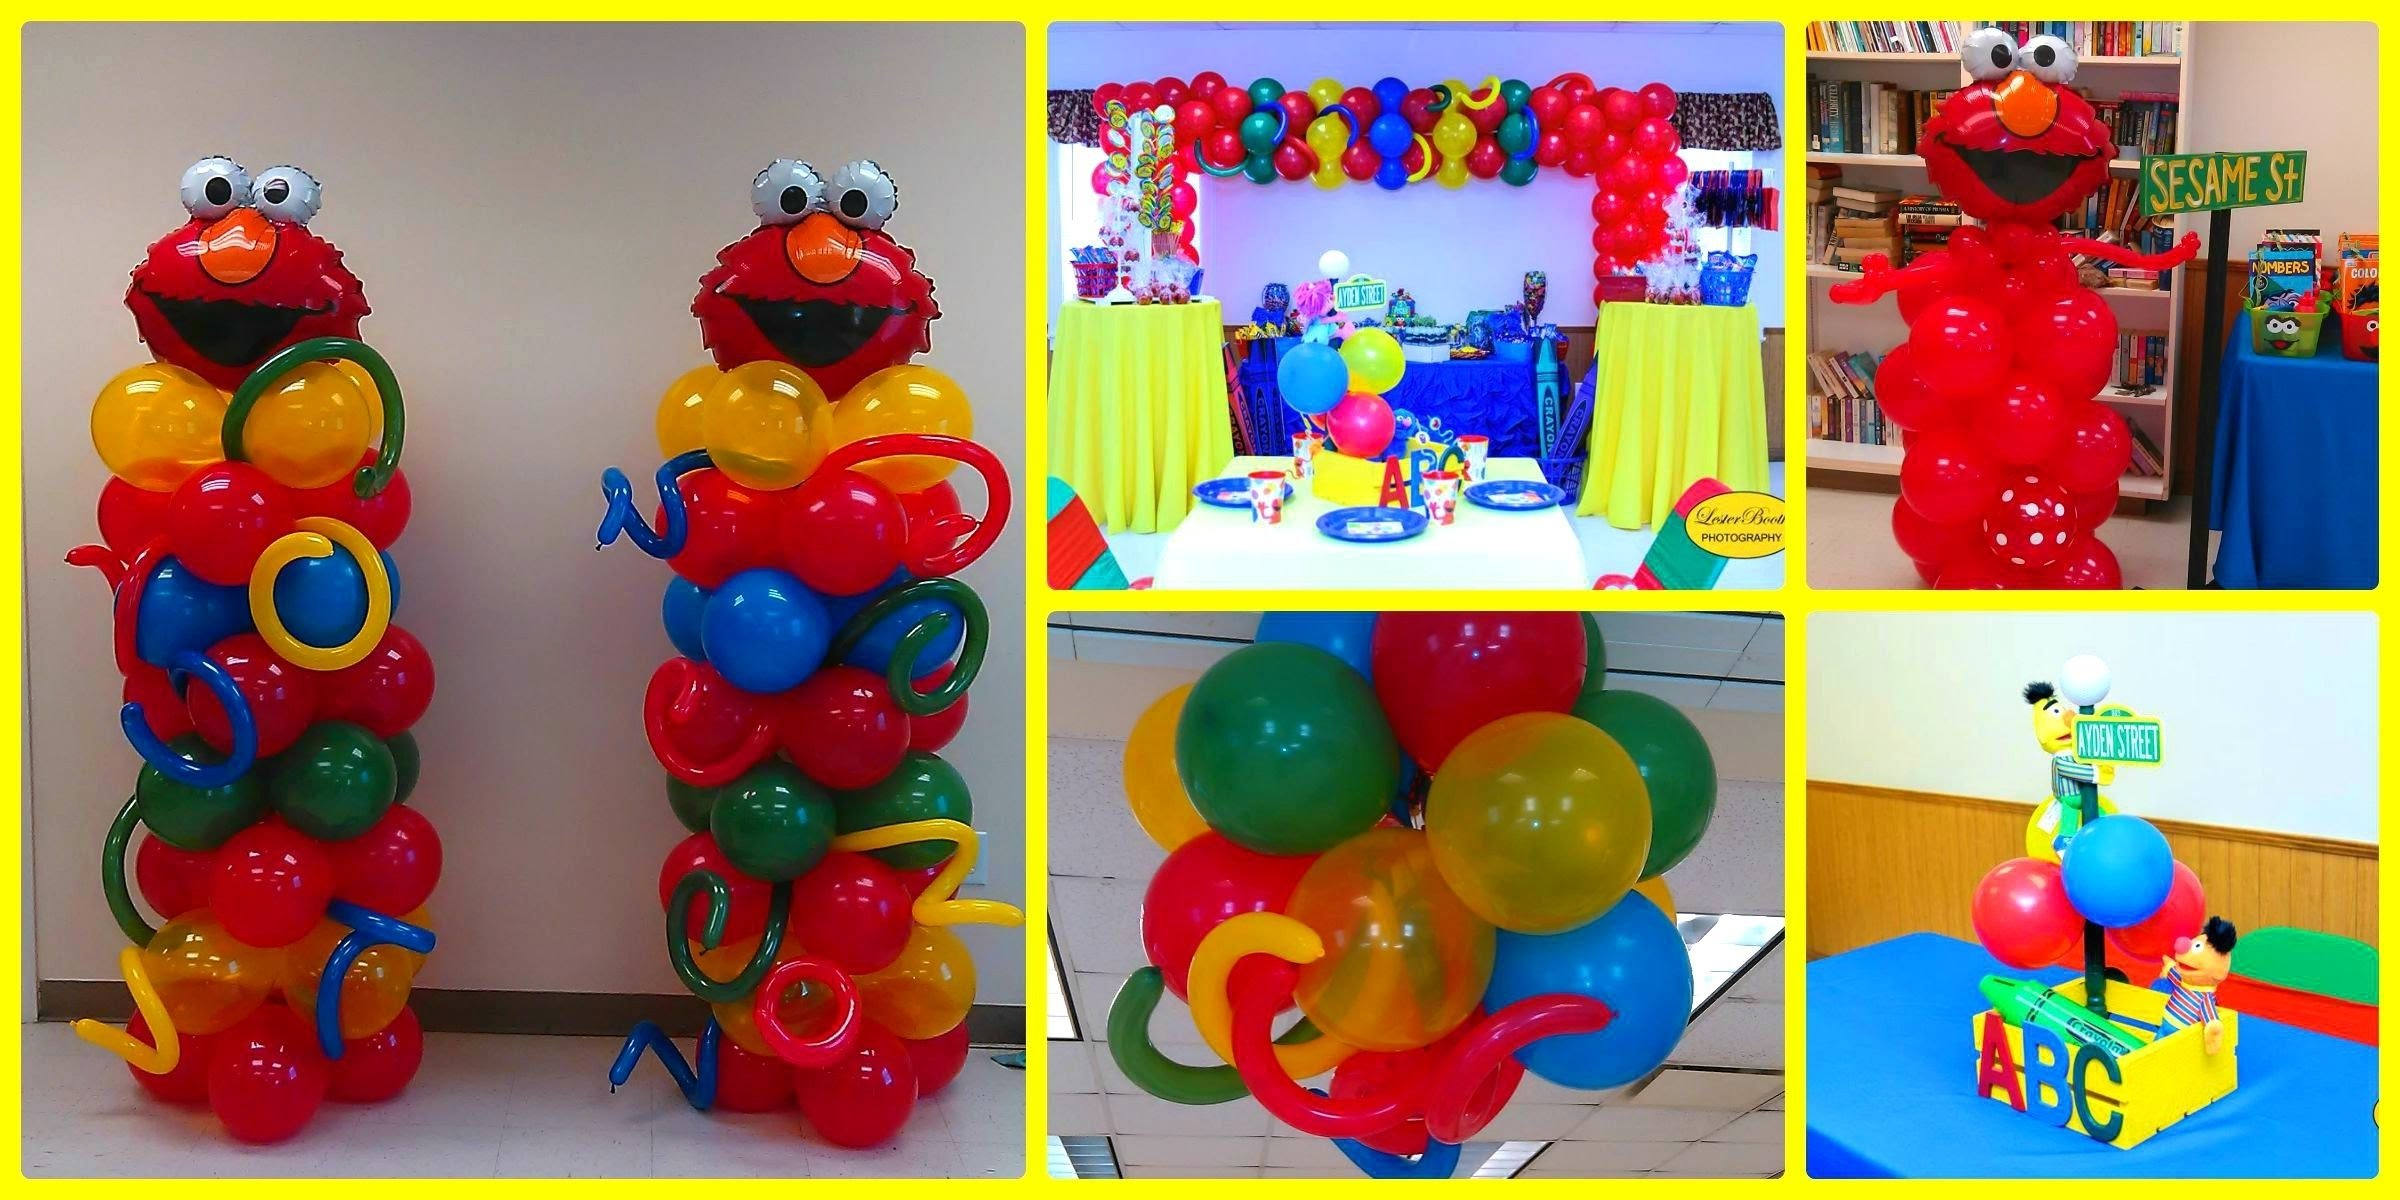 10 Lovely Sesame Street Party Ideas Decorations how to do a sesame street birthday party youtube 3 2020